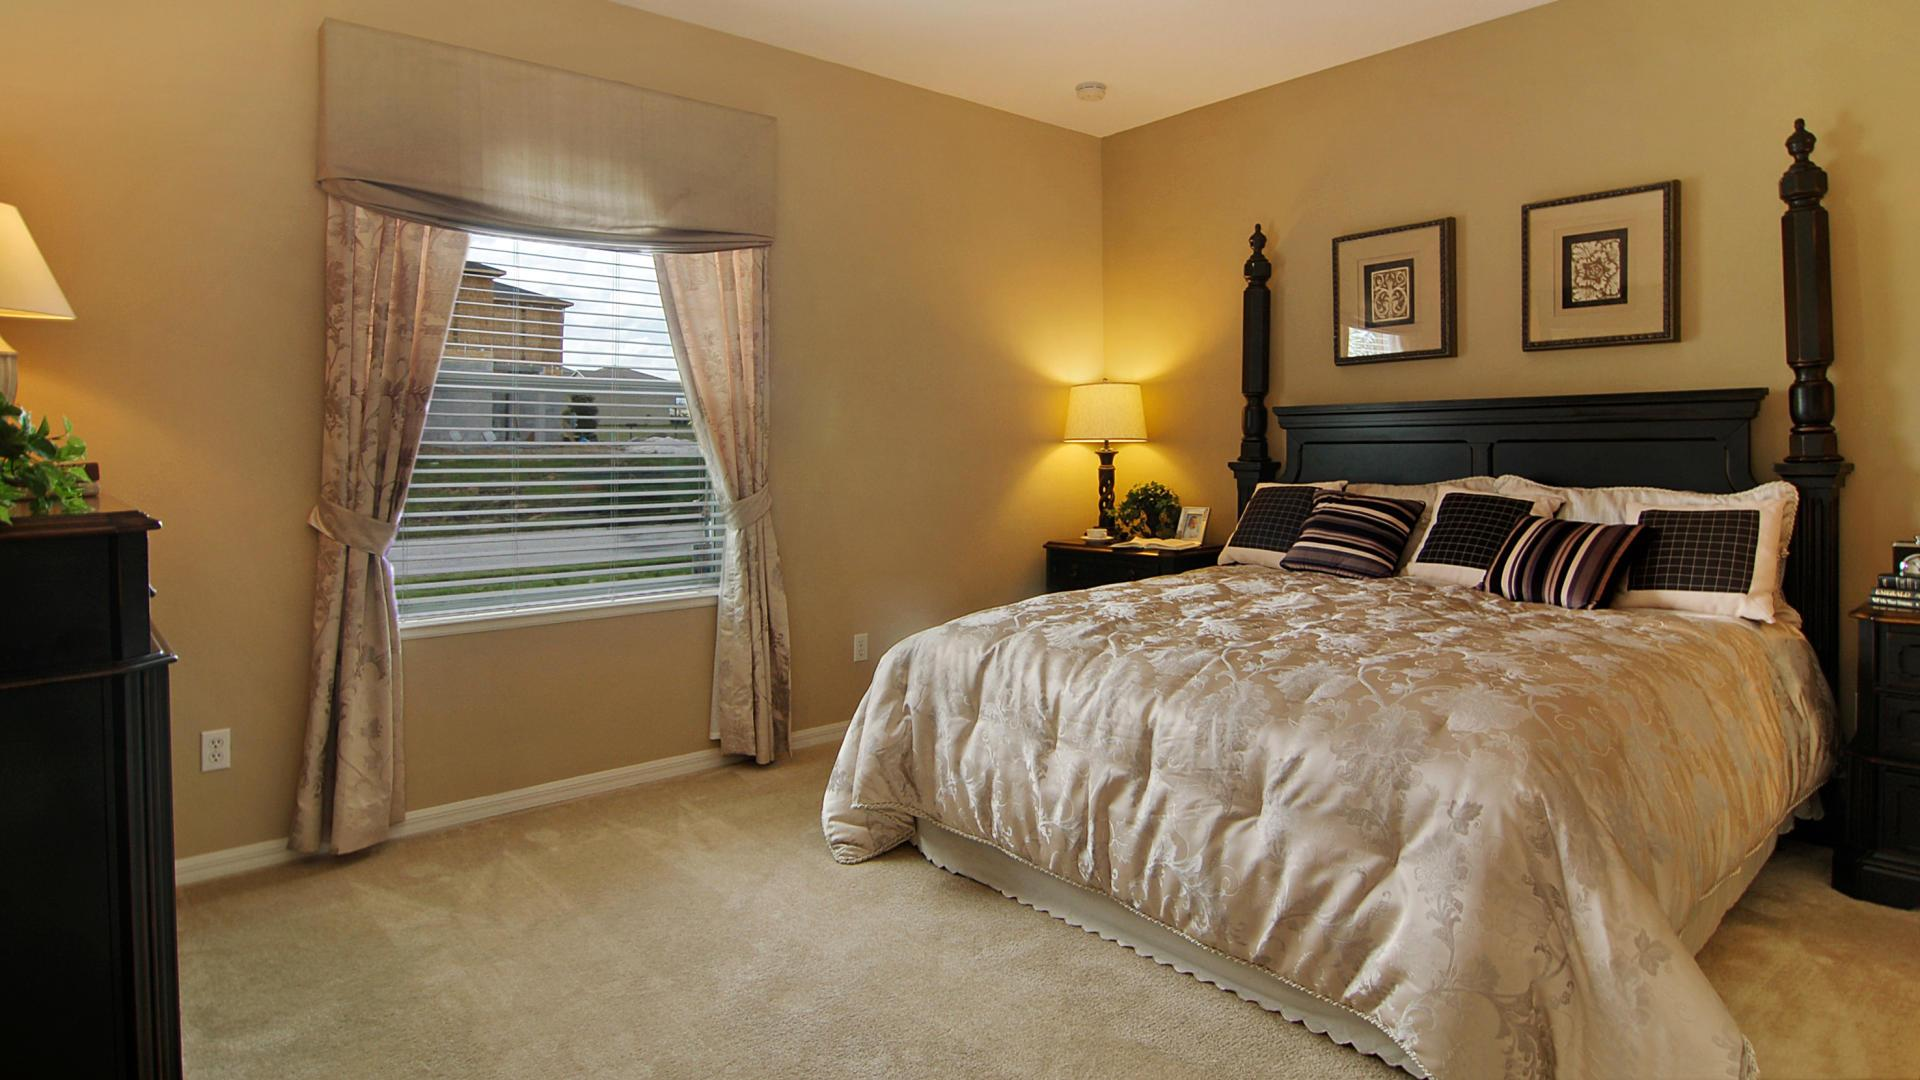 Bedroom featured in the Arlington By Maronda Homes in Gainesville, FL